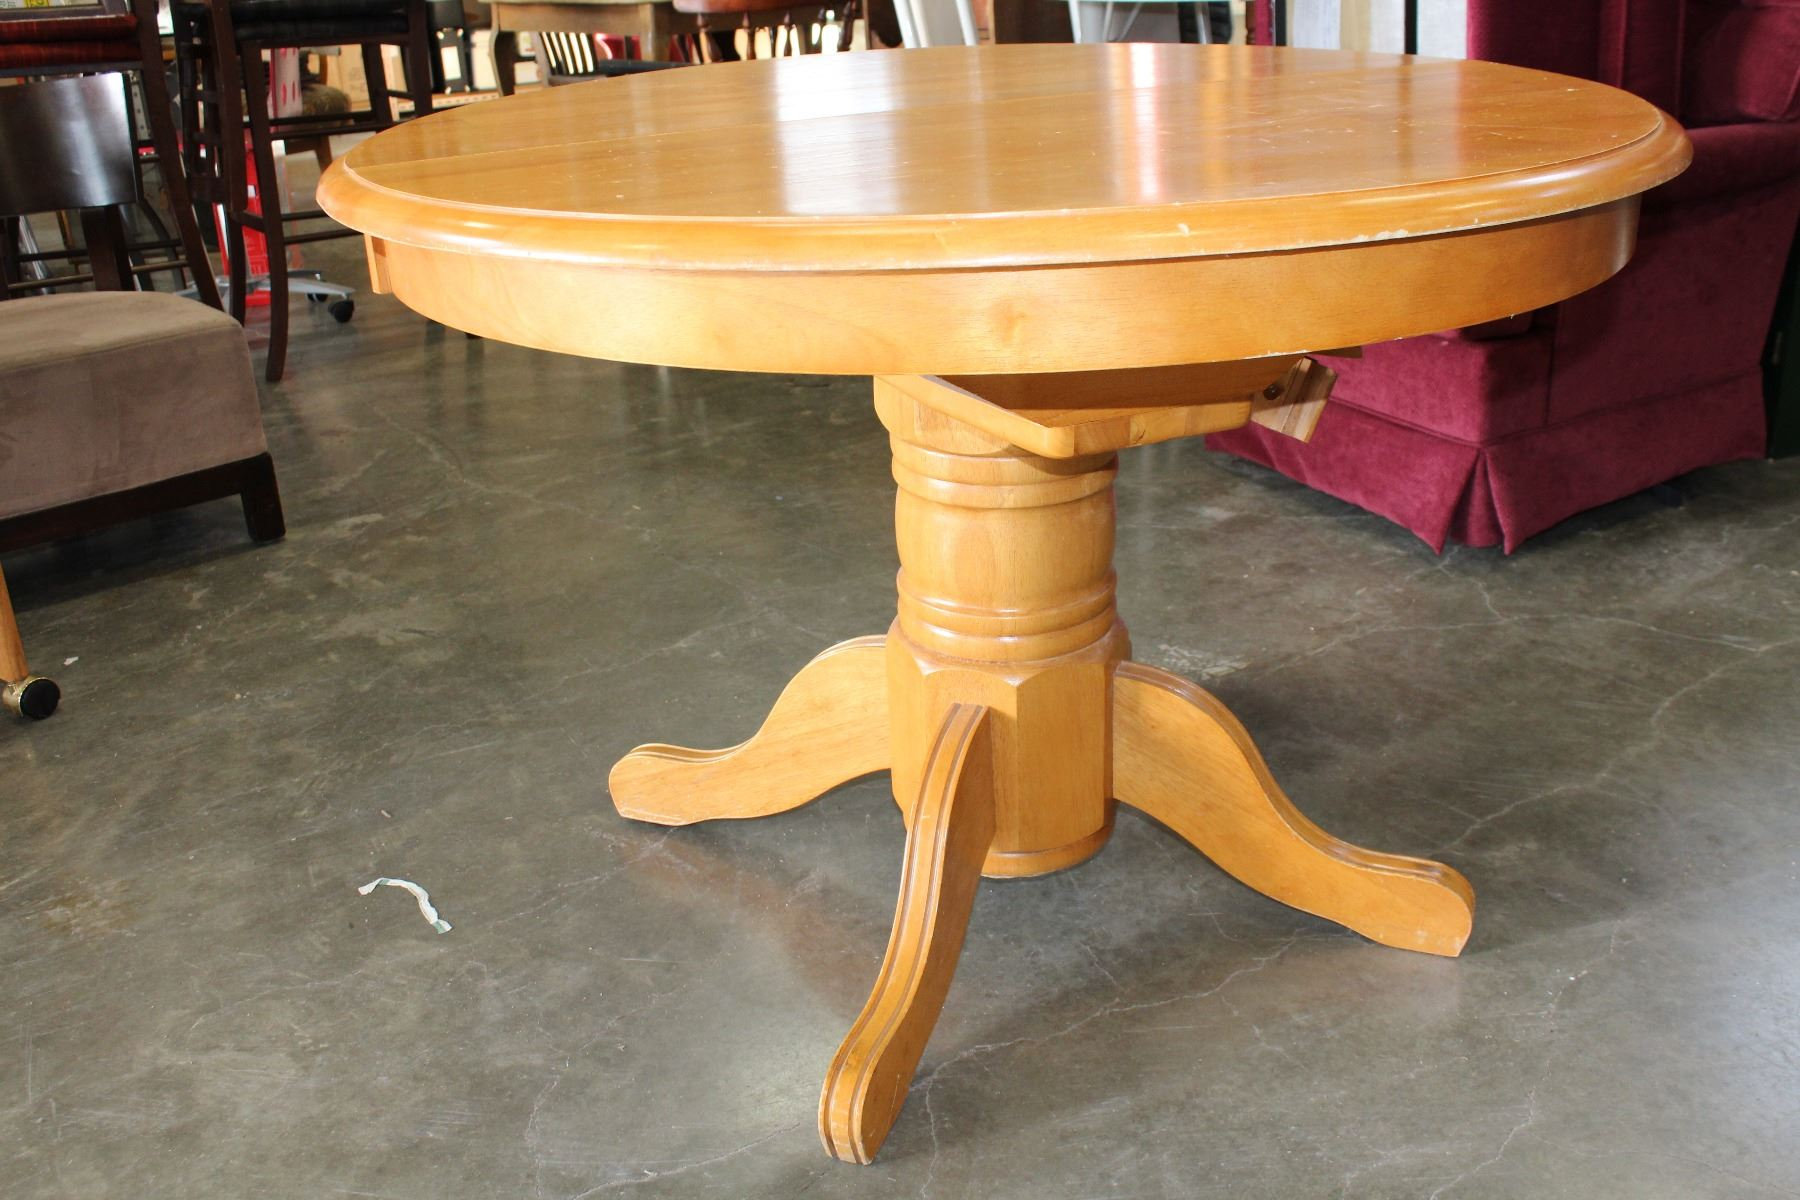 Image 3 Round Maple Dining Table With Jack Knife Leaf And Four Oak Rolling Chairs